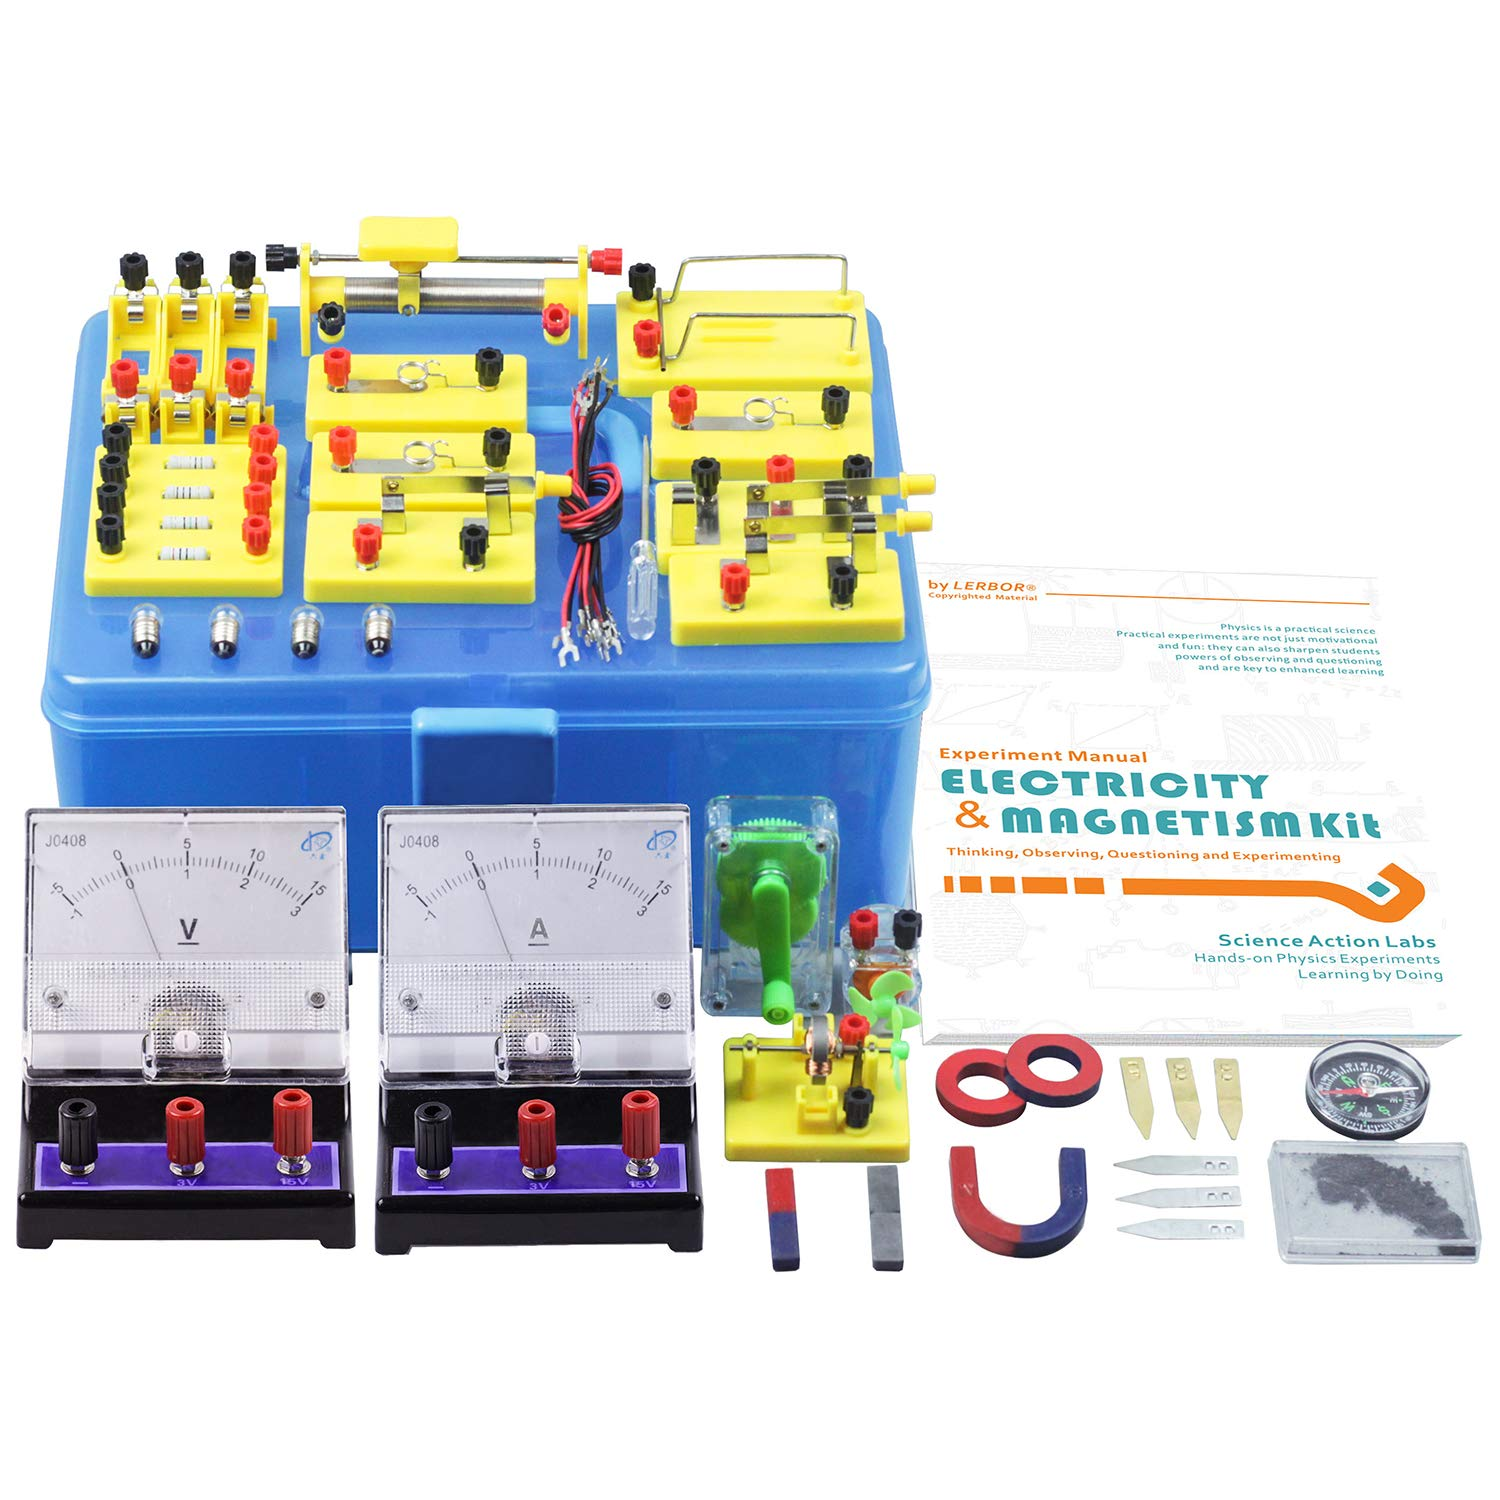 Teenii Stem Physics Science Lab Basic Circuit Learning Electrical Experiment Teaching Instrument Resistivitychina Starter Kit Electricity And Magnetism For Kids Junior Senior High School